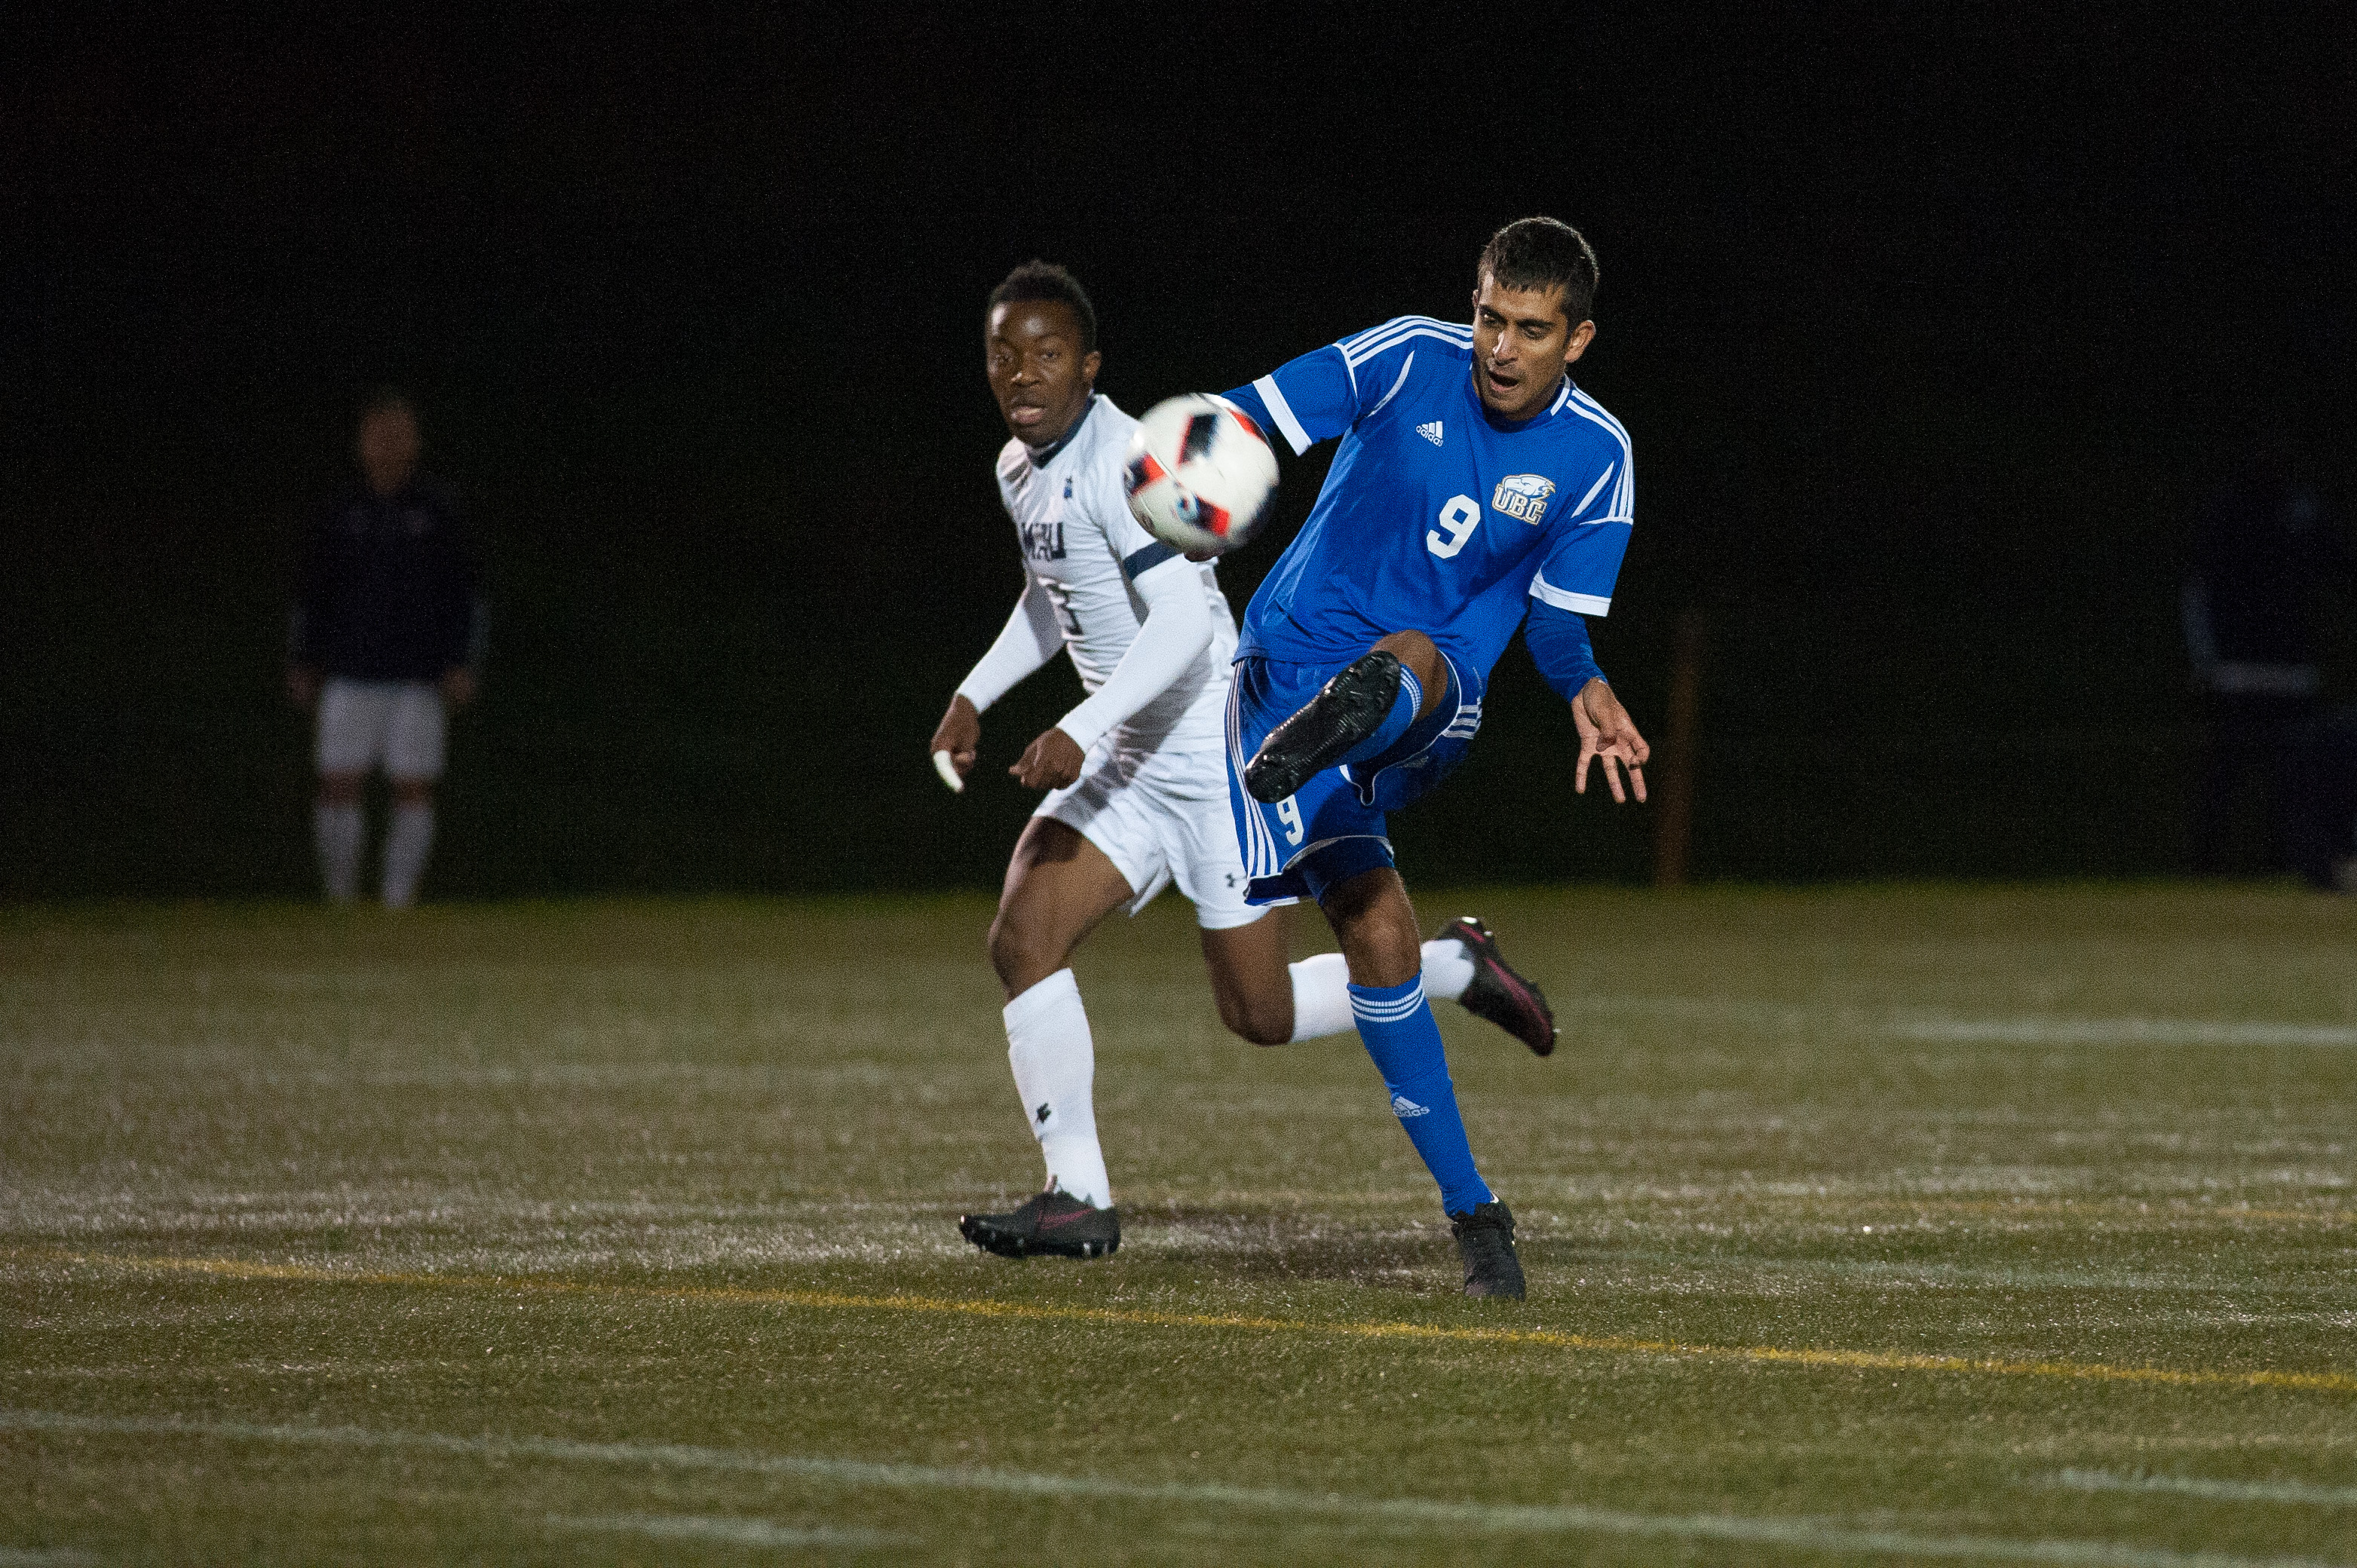 UBC's Kyle Sohi makes the touch for the tie-breaking goal in extra time.